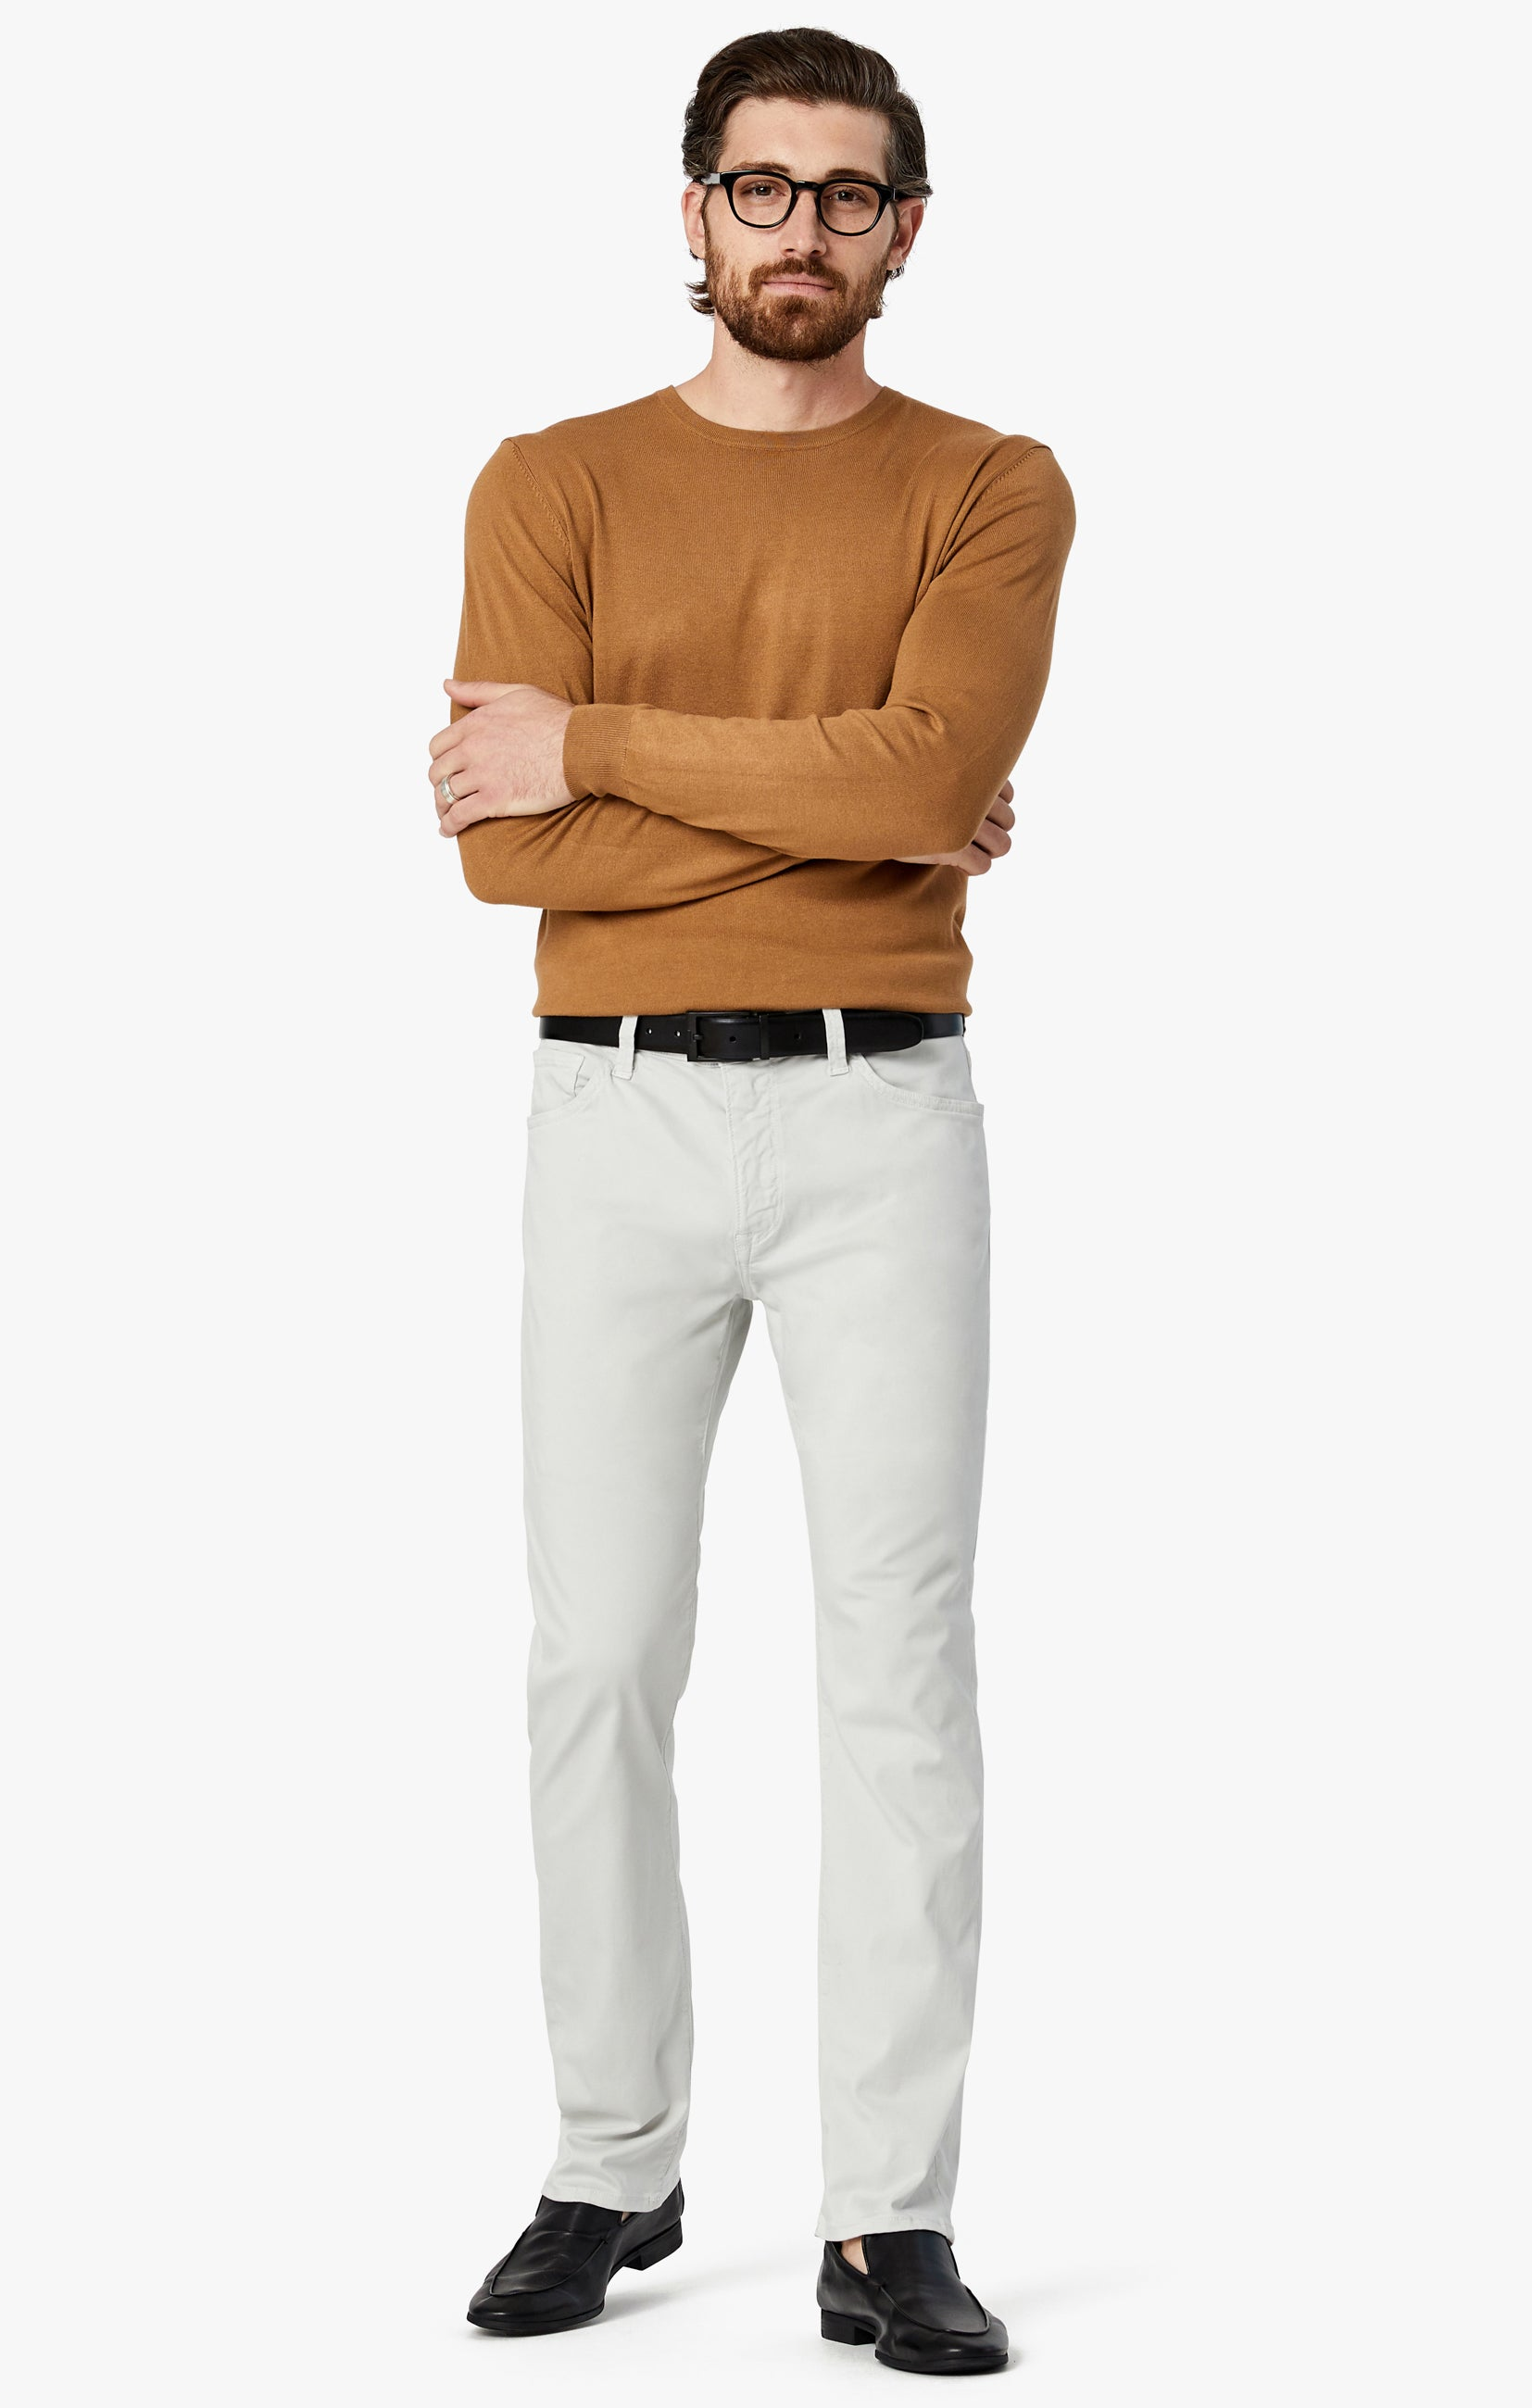 Courage Straight Leg Jeans in Bone Twill Image 5